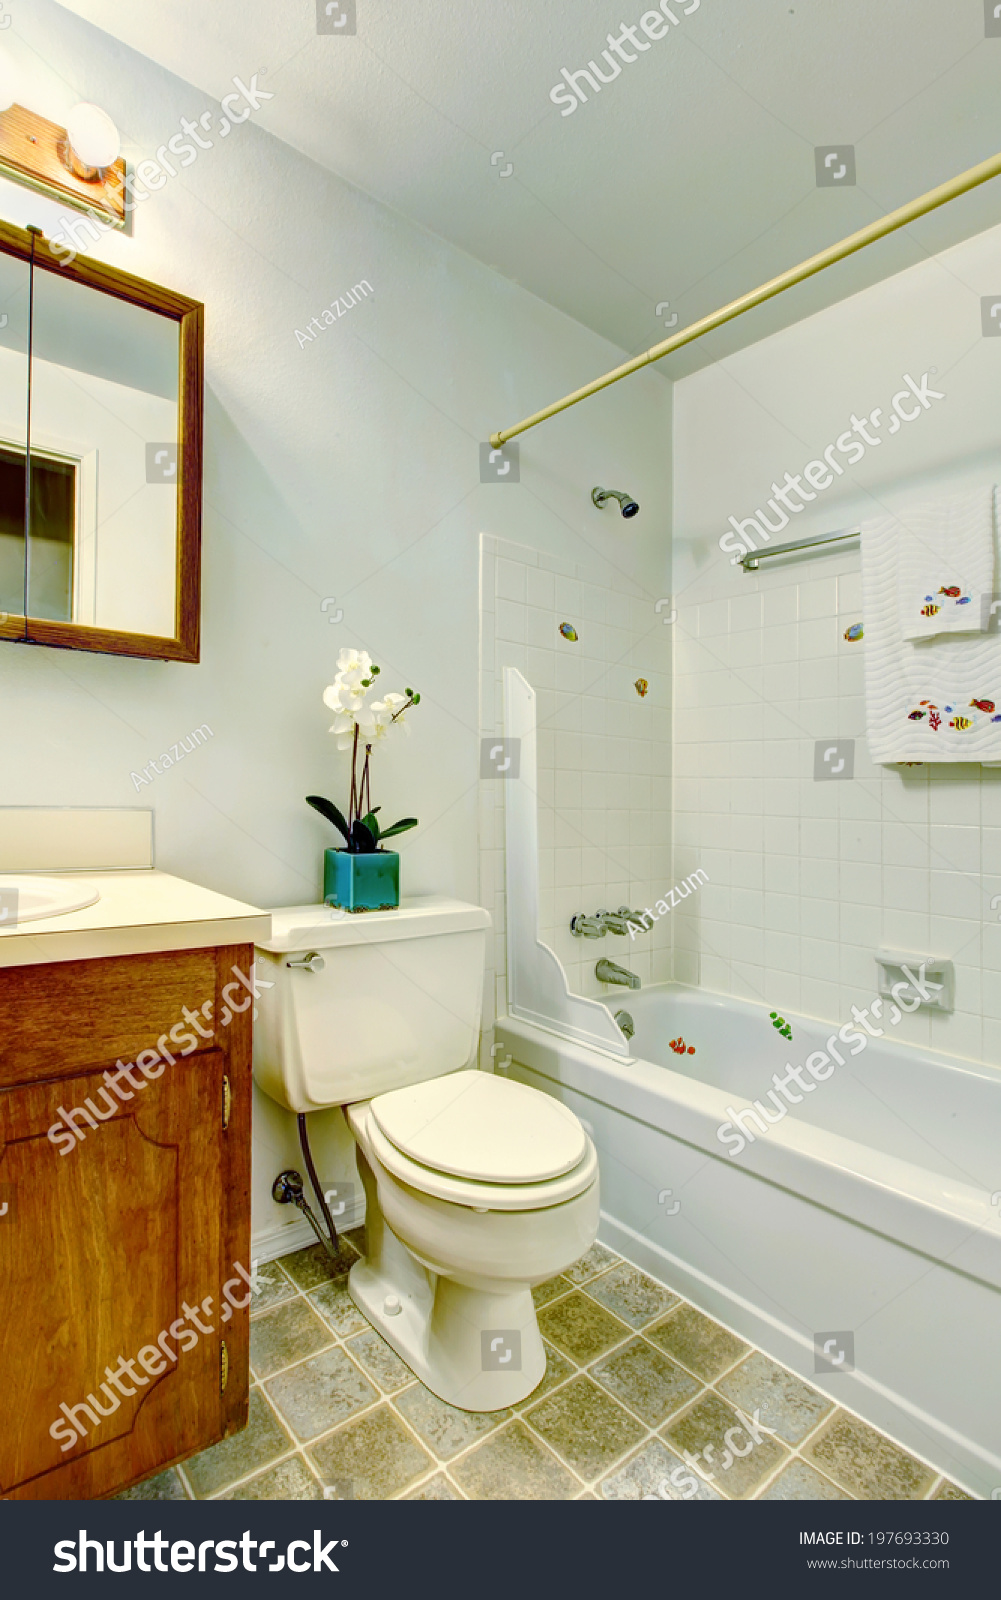 White Small Bathroom Bathroom Vanity Cabinet Stock Photo